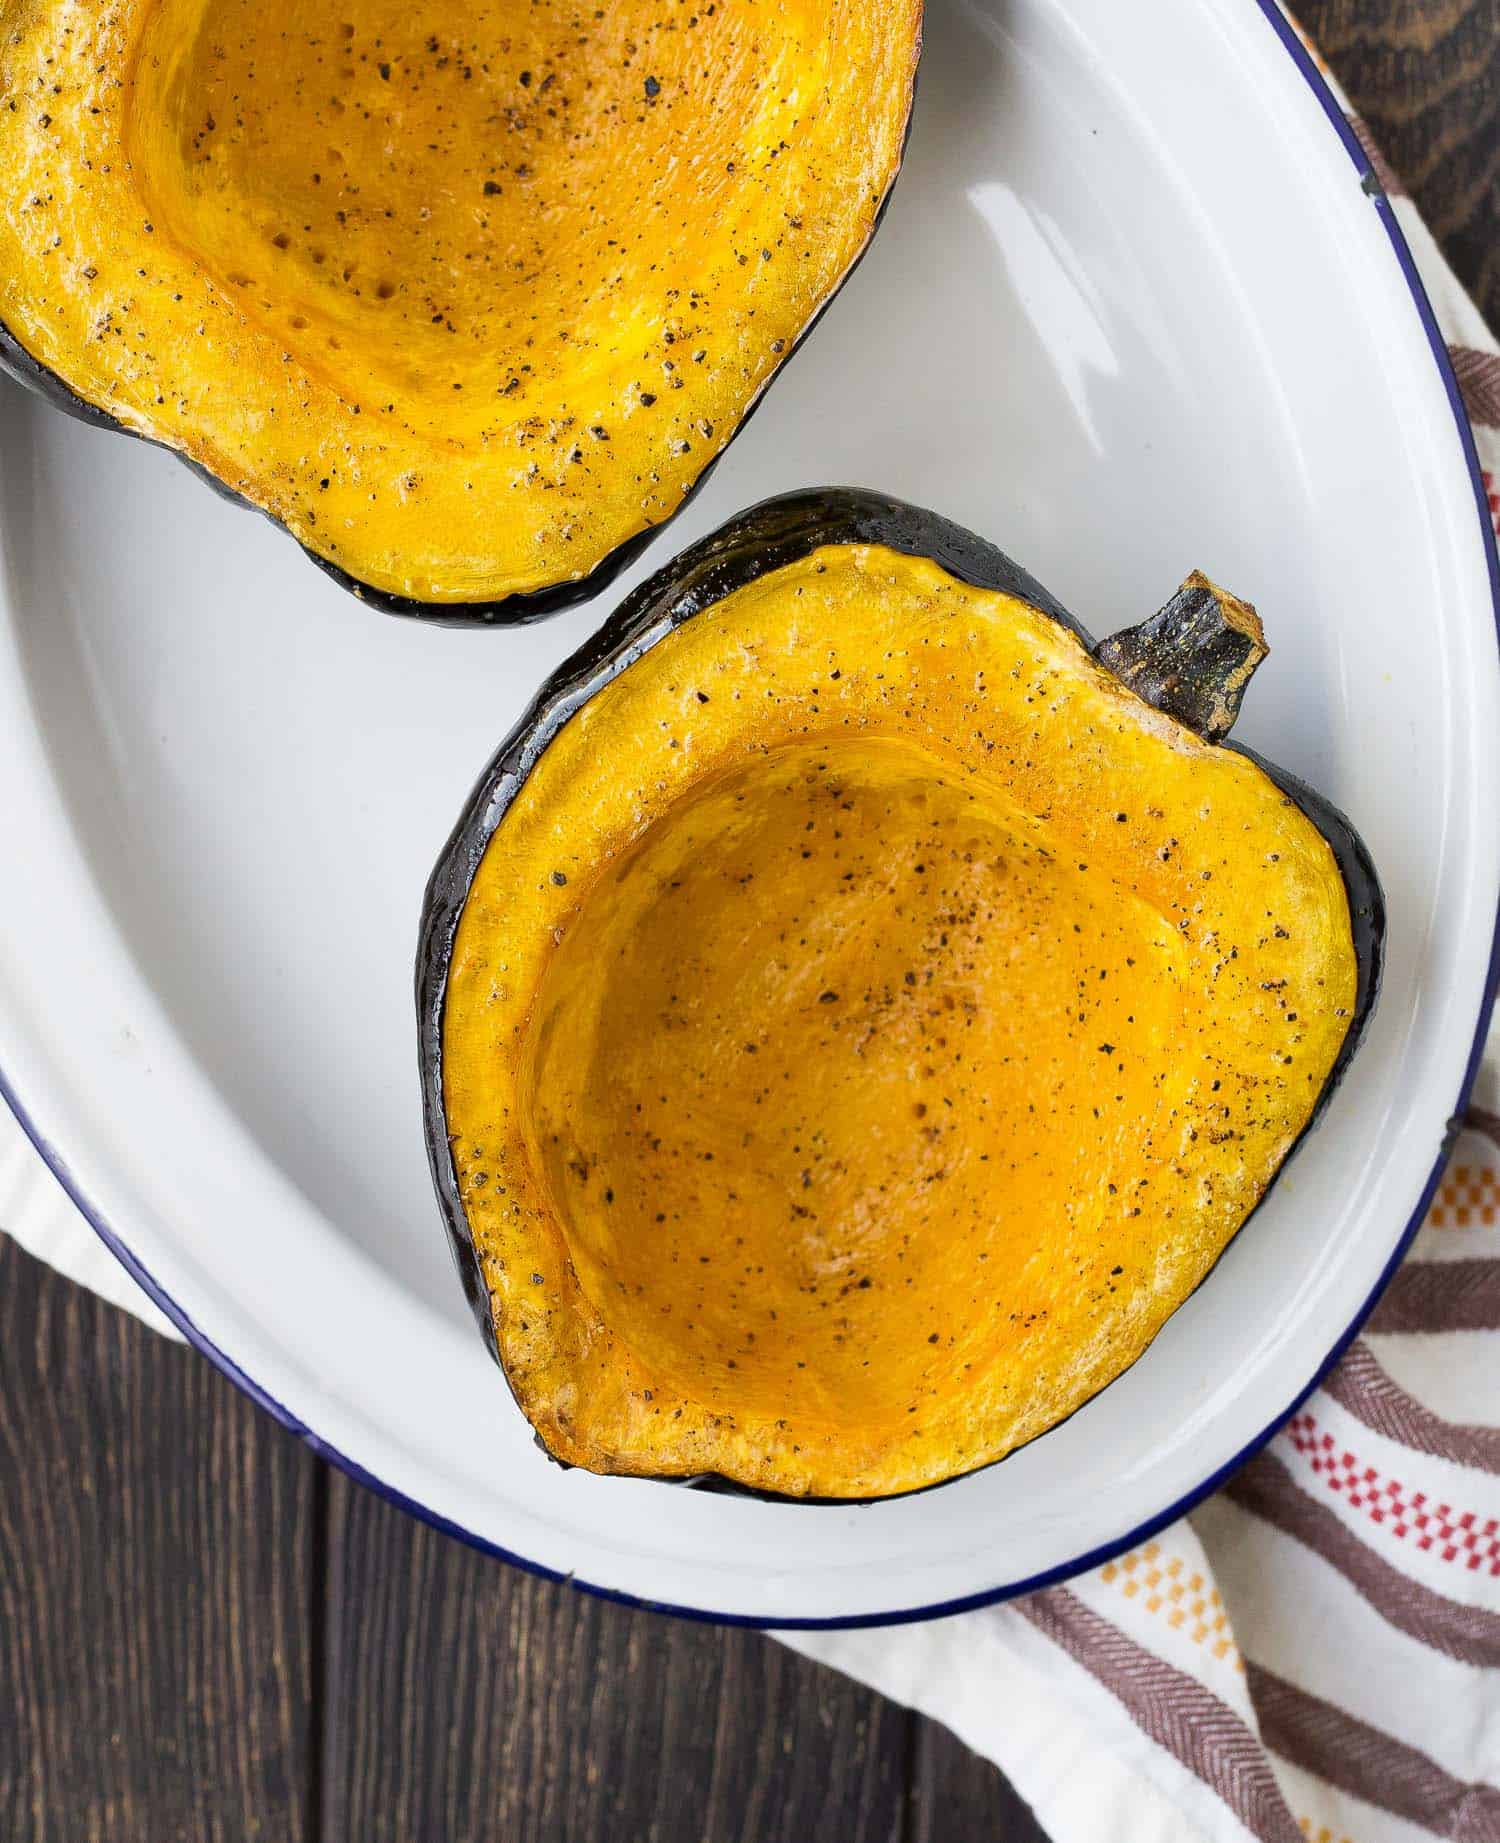 Overhead view of acorn squash half, roasted with pepper.